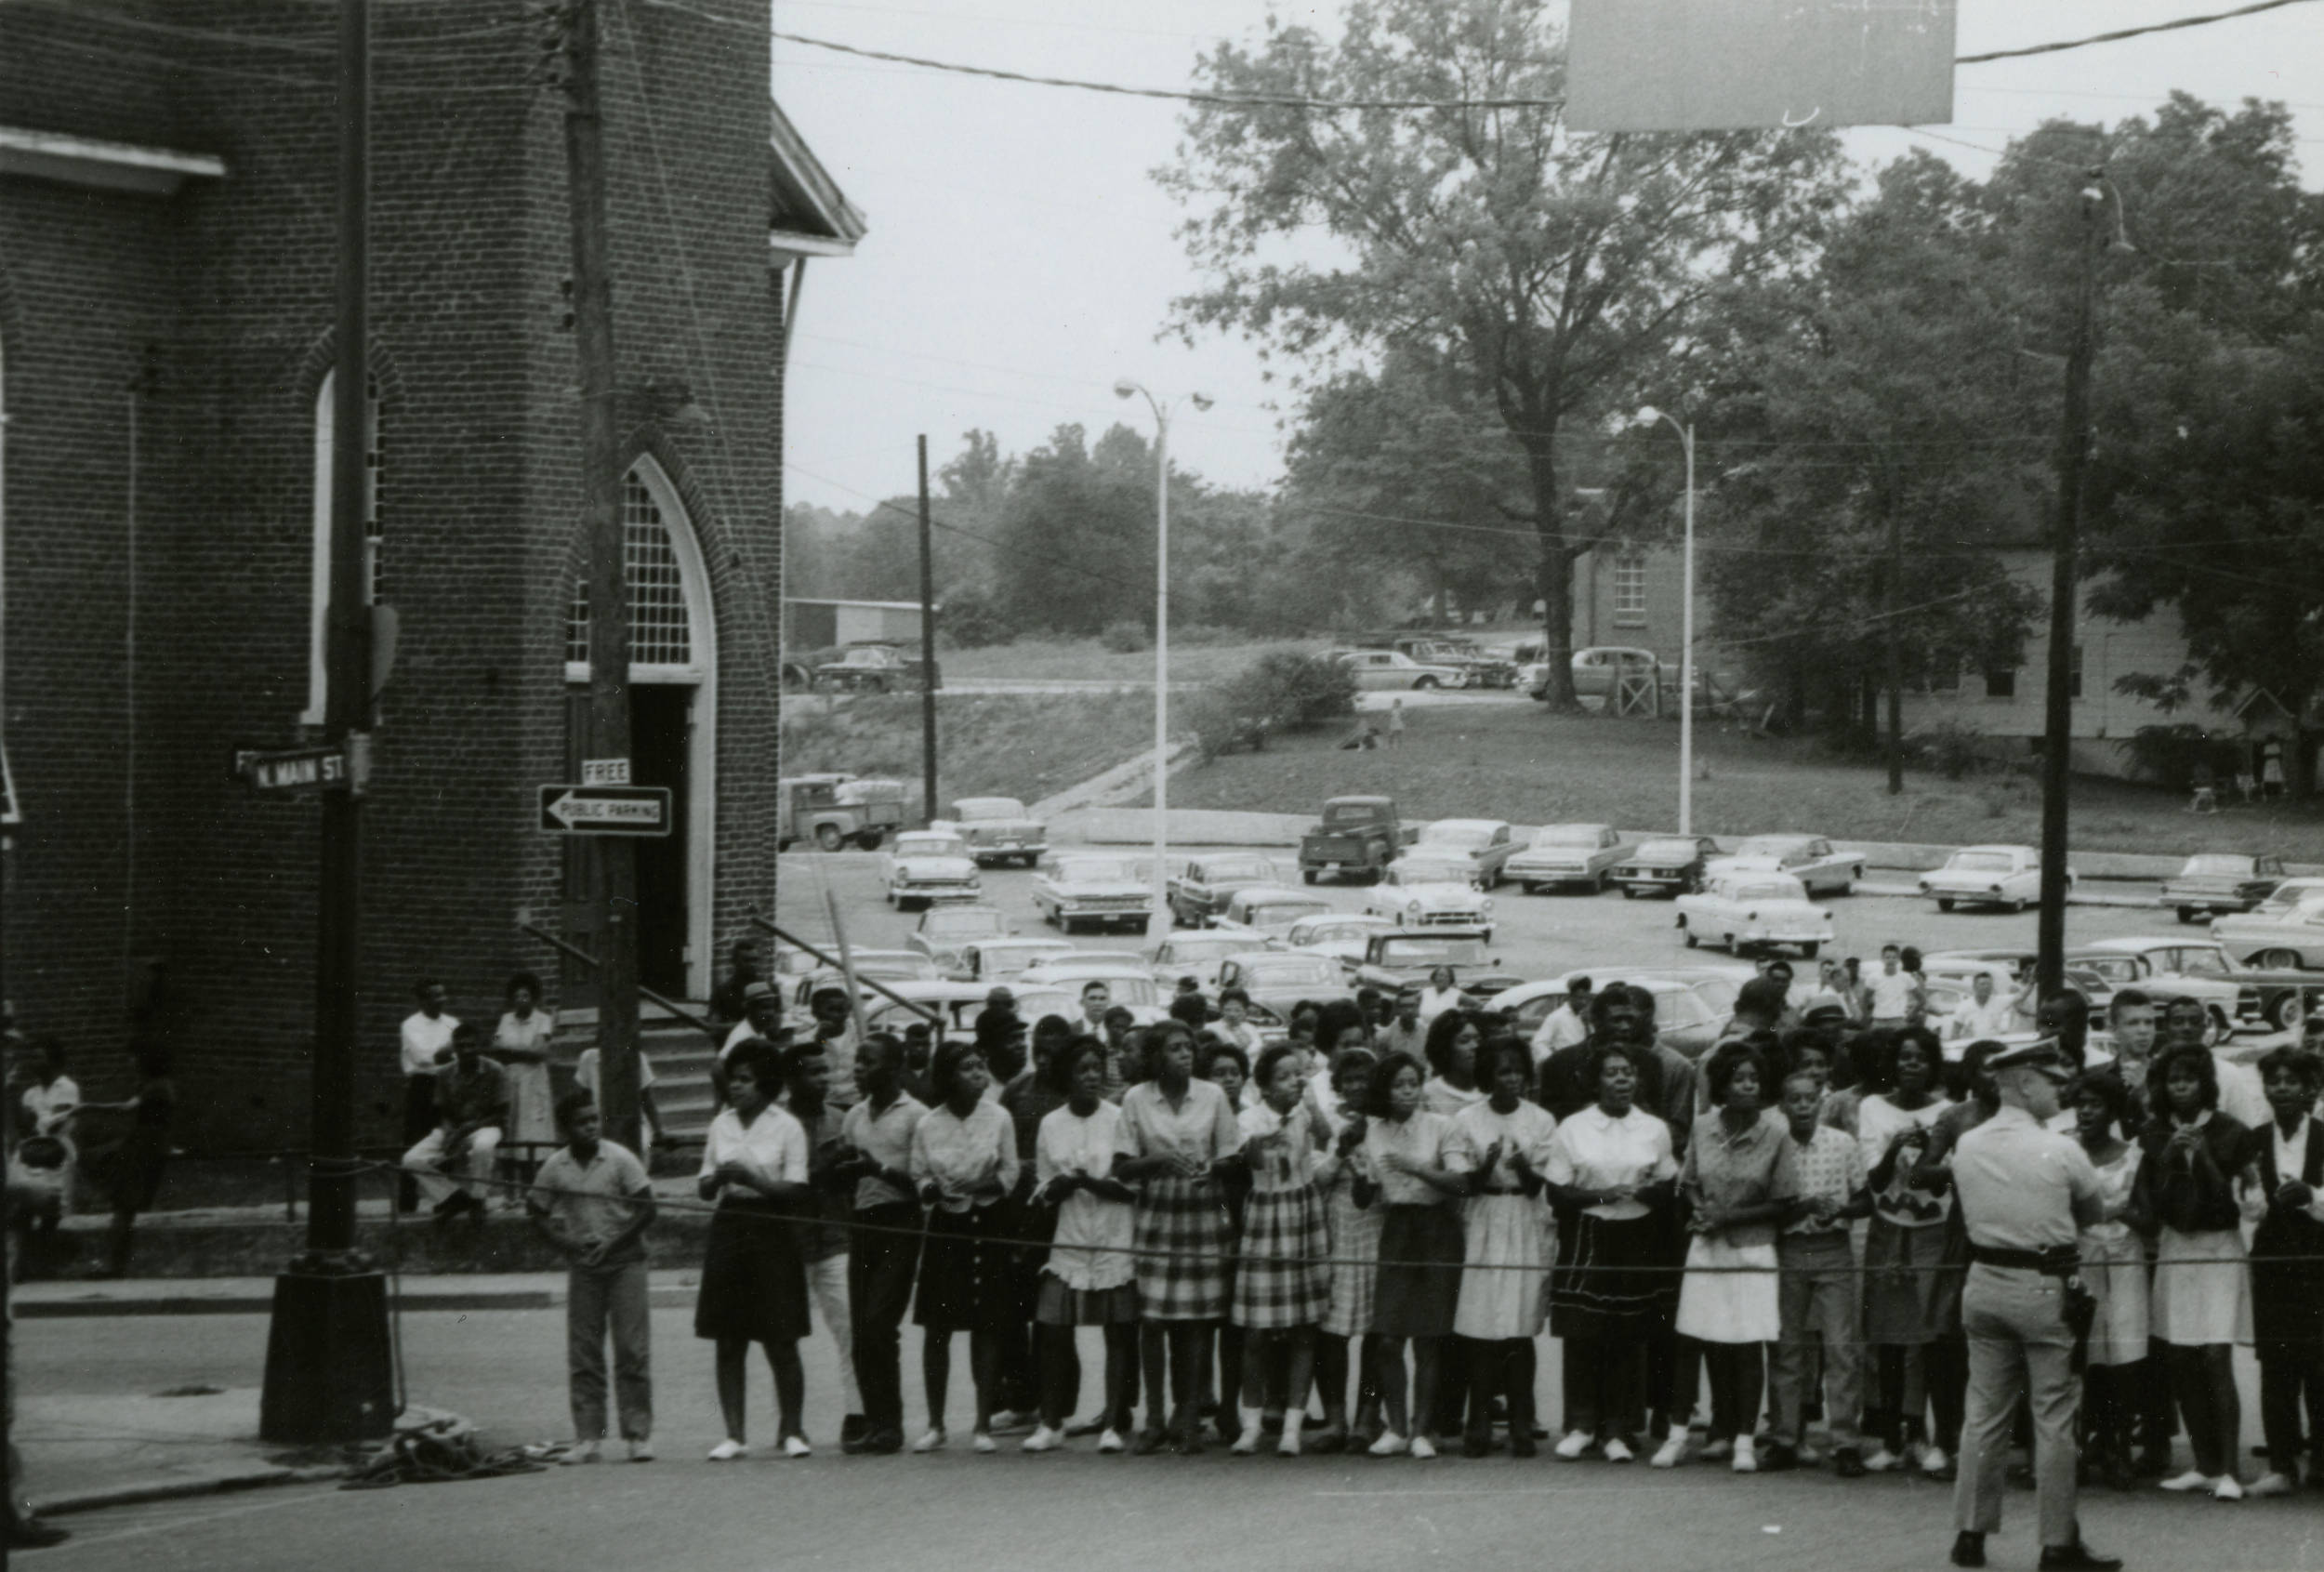 An image of a group of black activists outside of First Baptist church